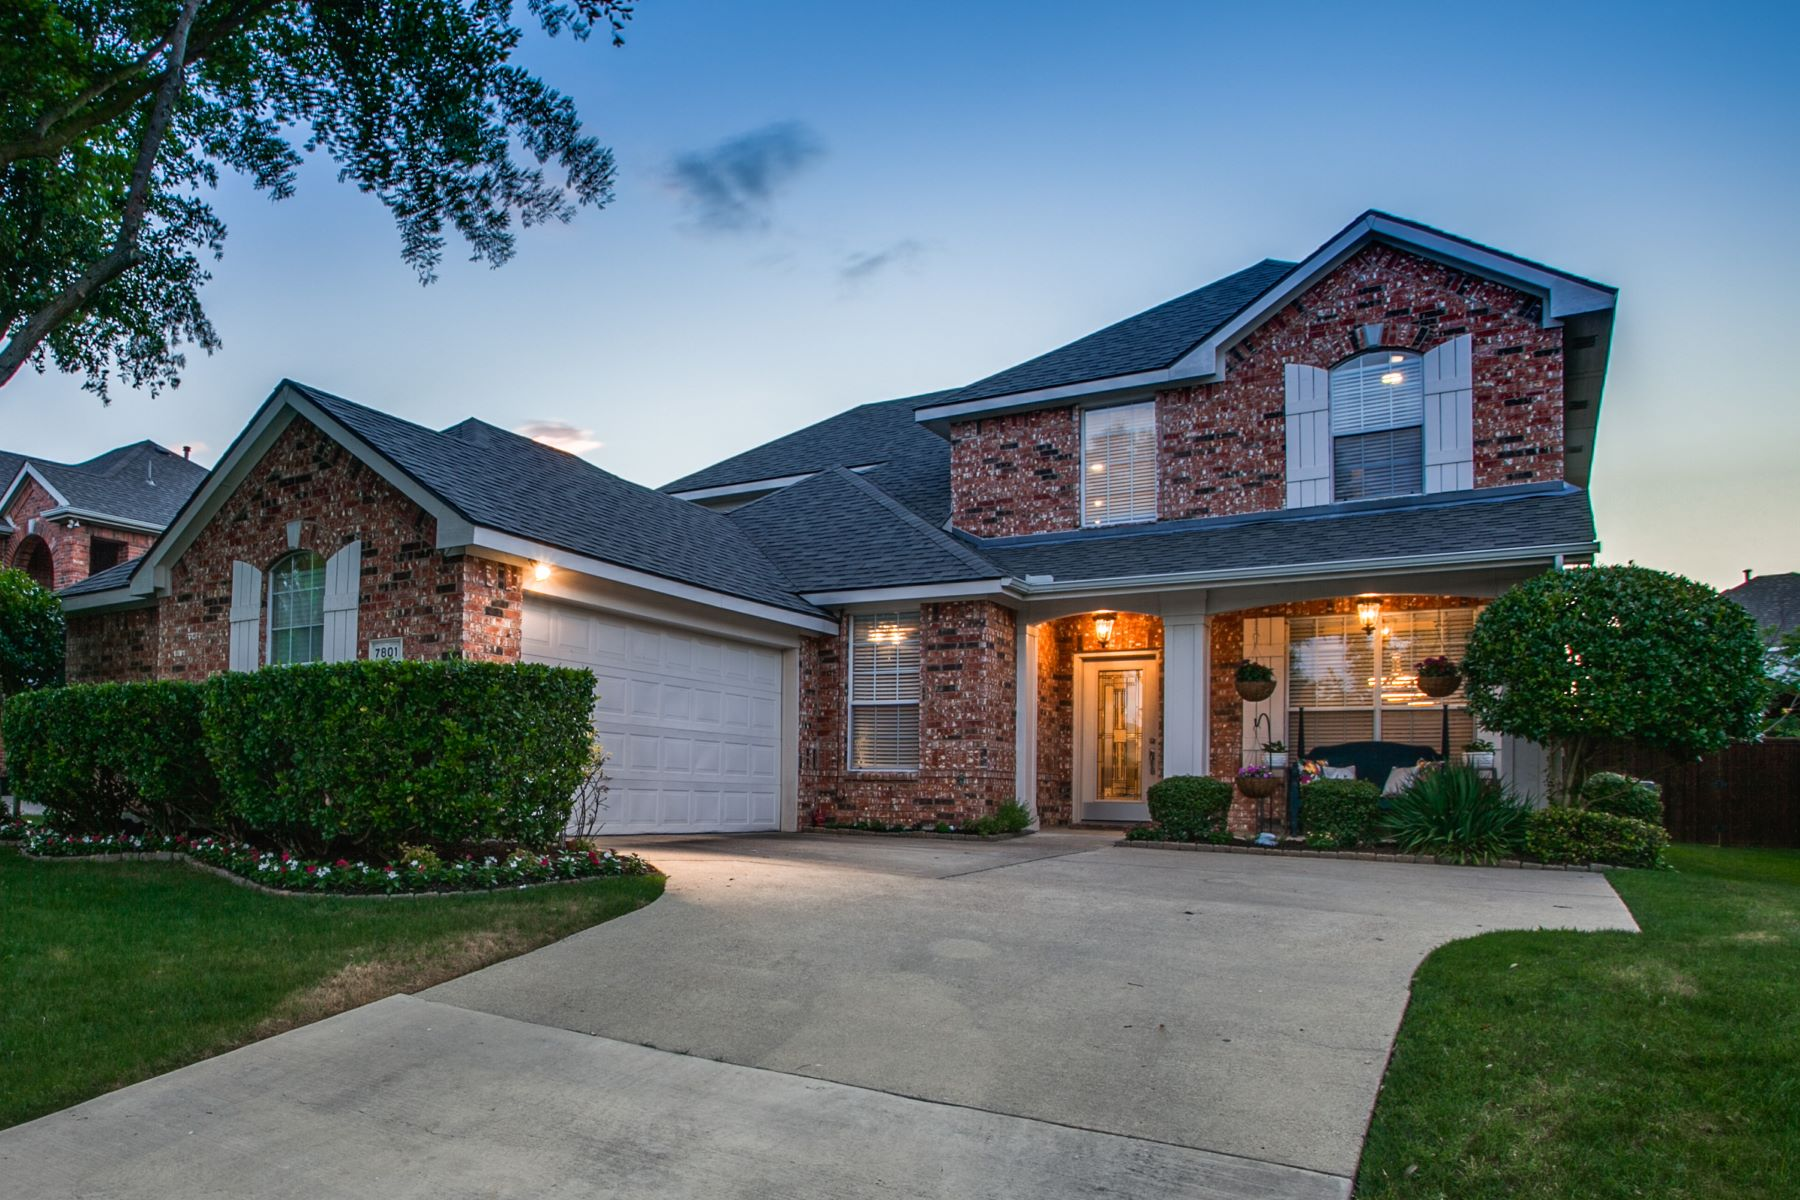 Single Family Homes for Sale at 7801 Fern Hill Lane, Rowlett, TX, 75089 7801 Fern Hill Lane Rowlett, Texas 75089 United States